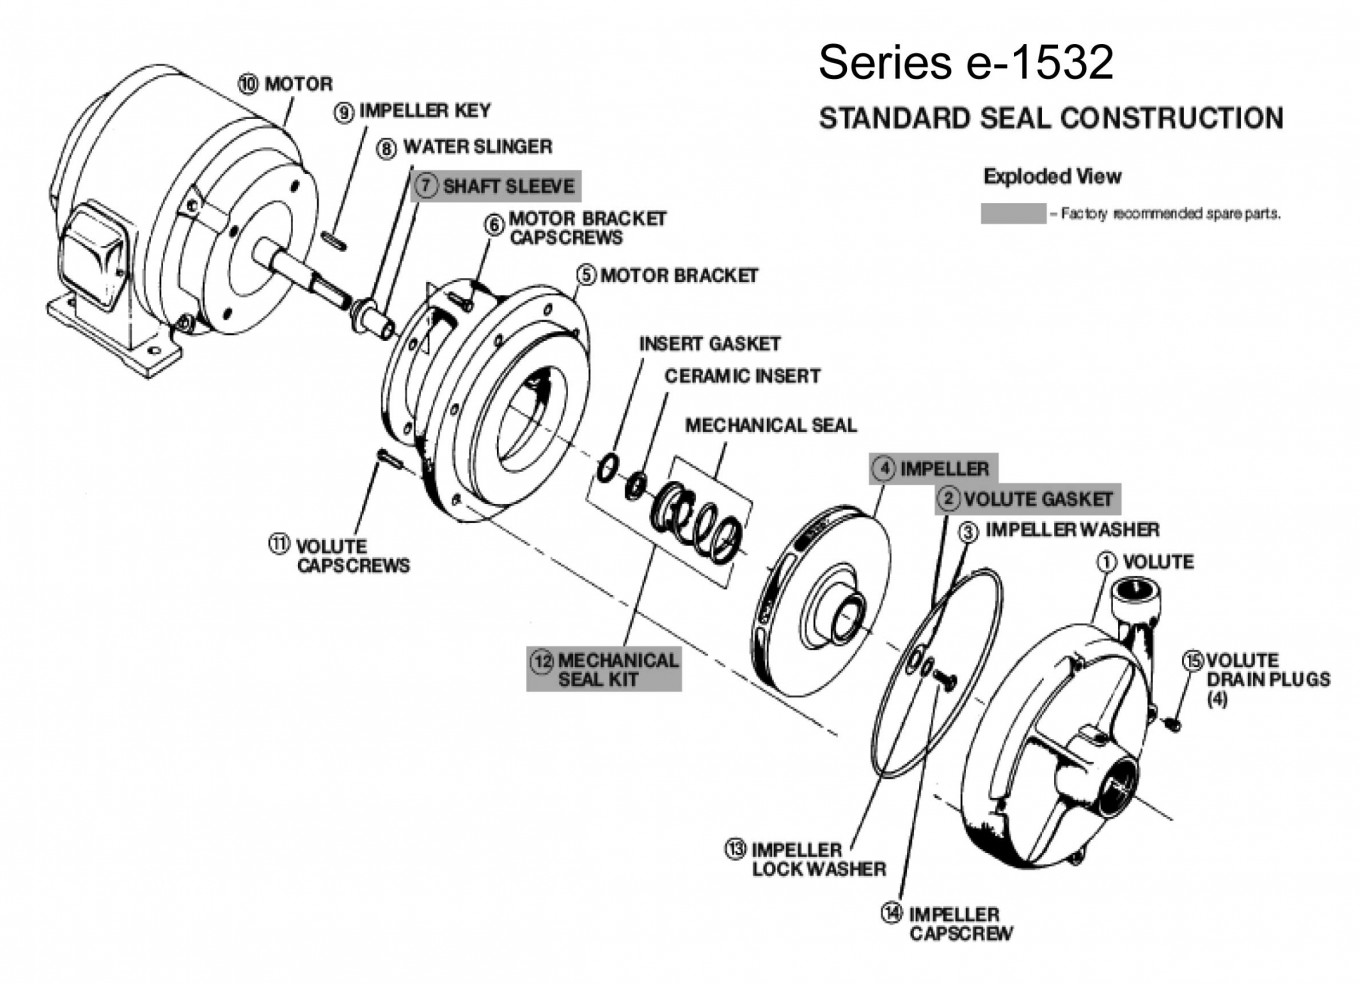 Bell Gossett Series E 1532 Pumps Wiring Diagram W Standard Seal Exploded View